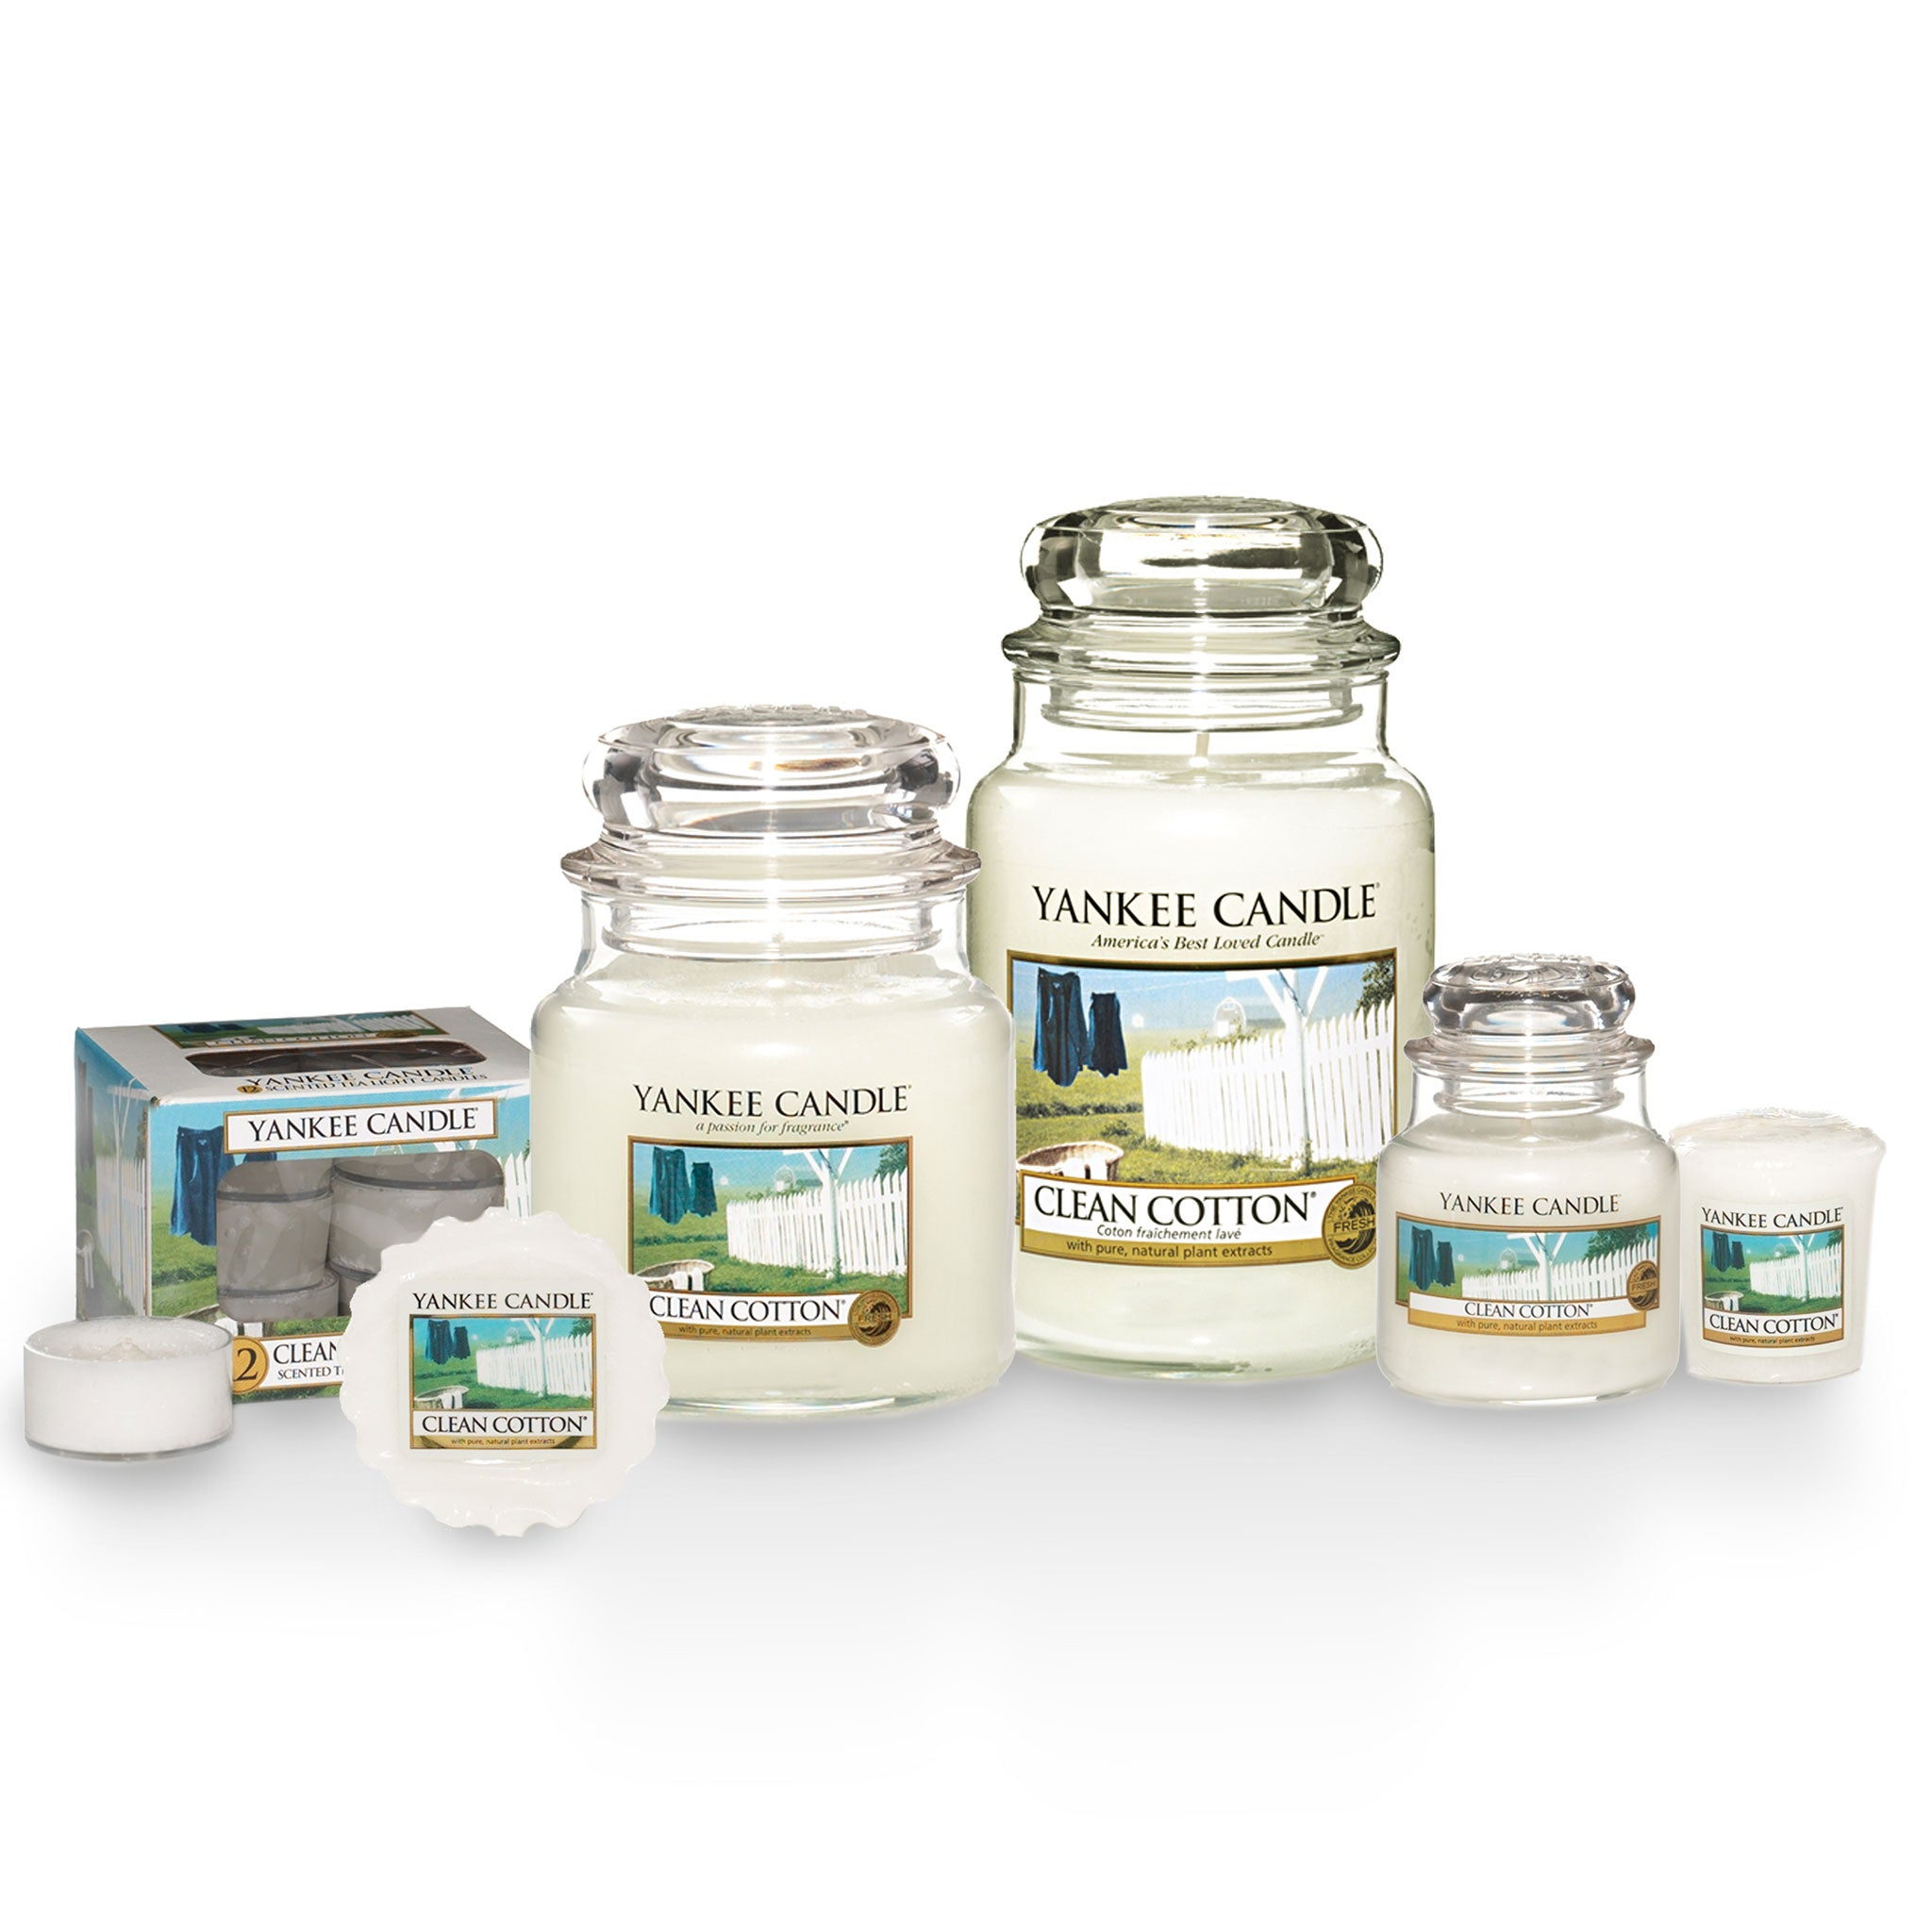 CLEAN COTTON -Yankee Candle- Giara Media